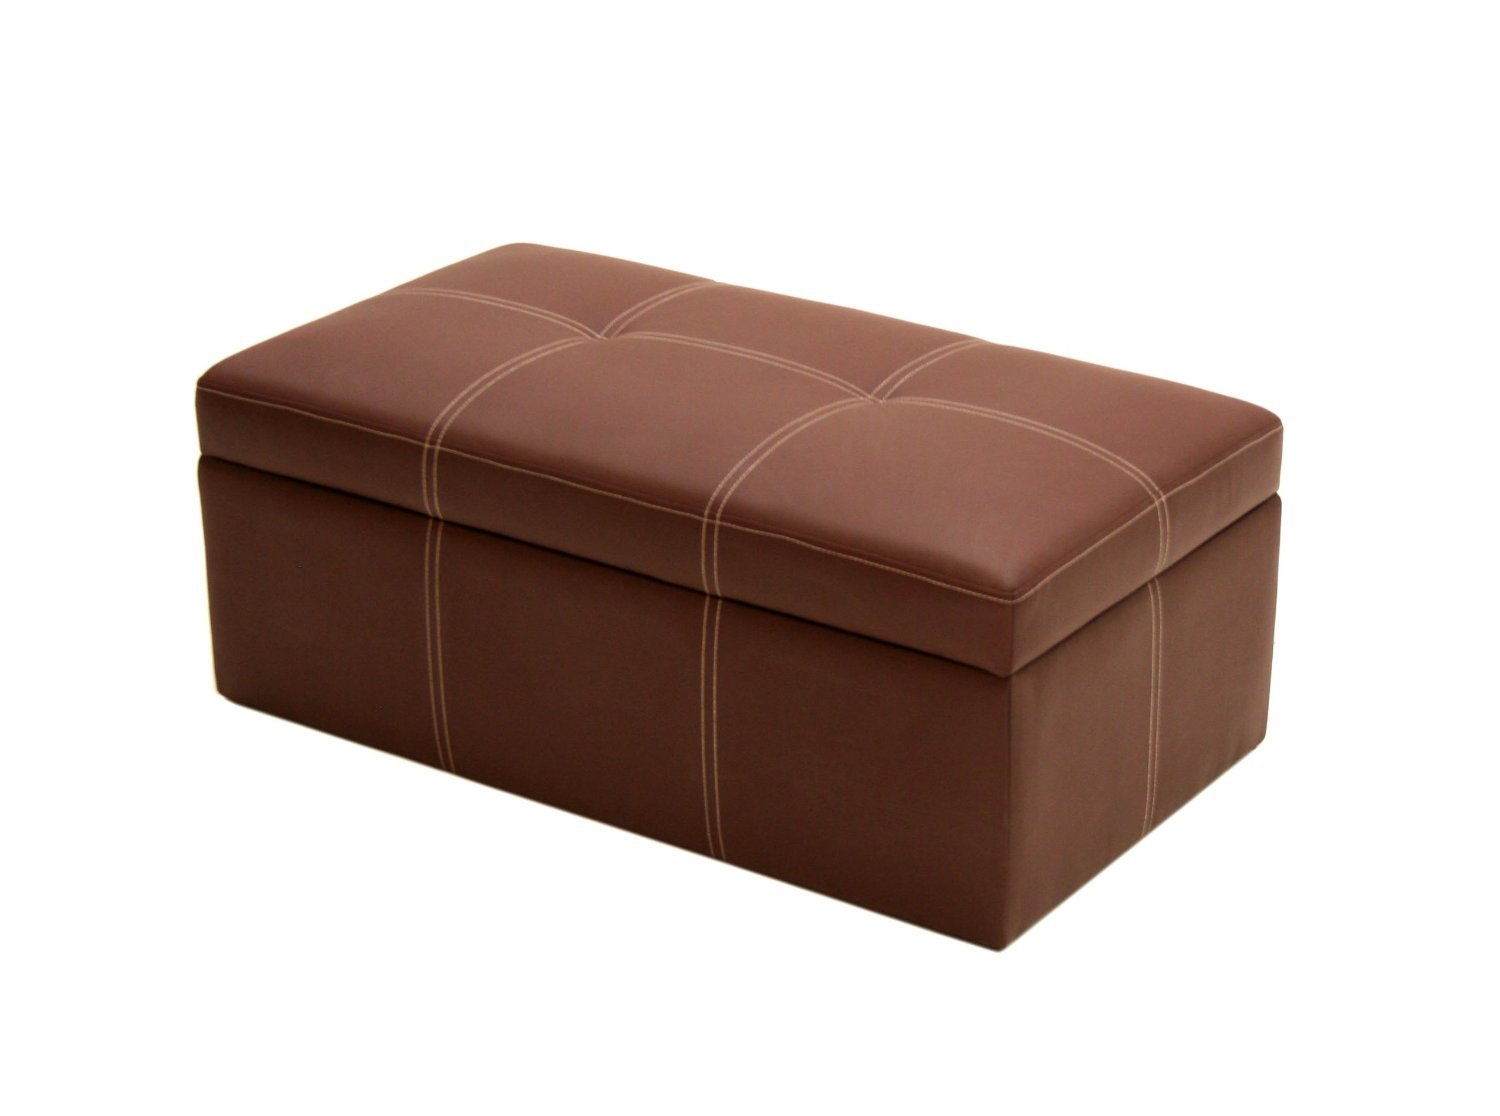 Brown Faux Leather Large Rectangle Ottoman Storage Seat